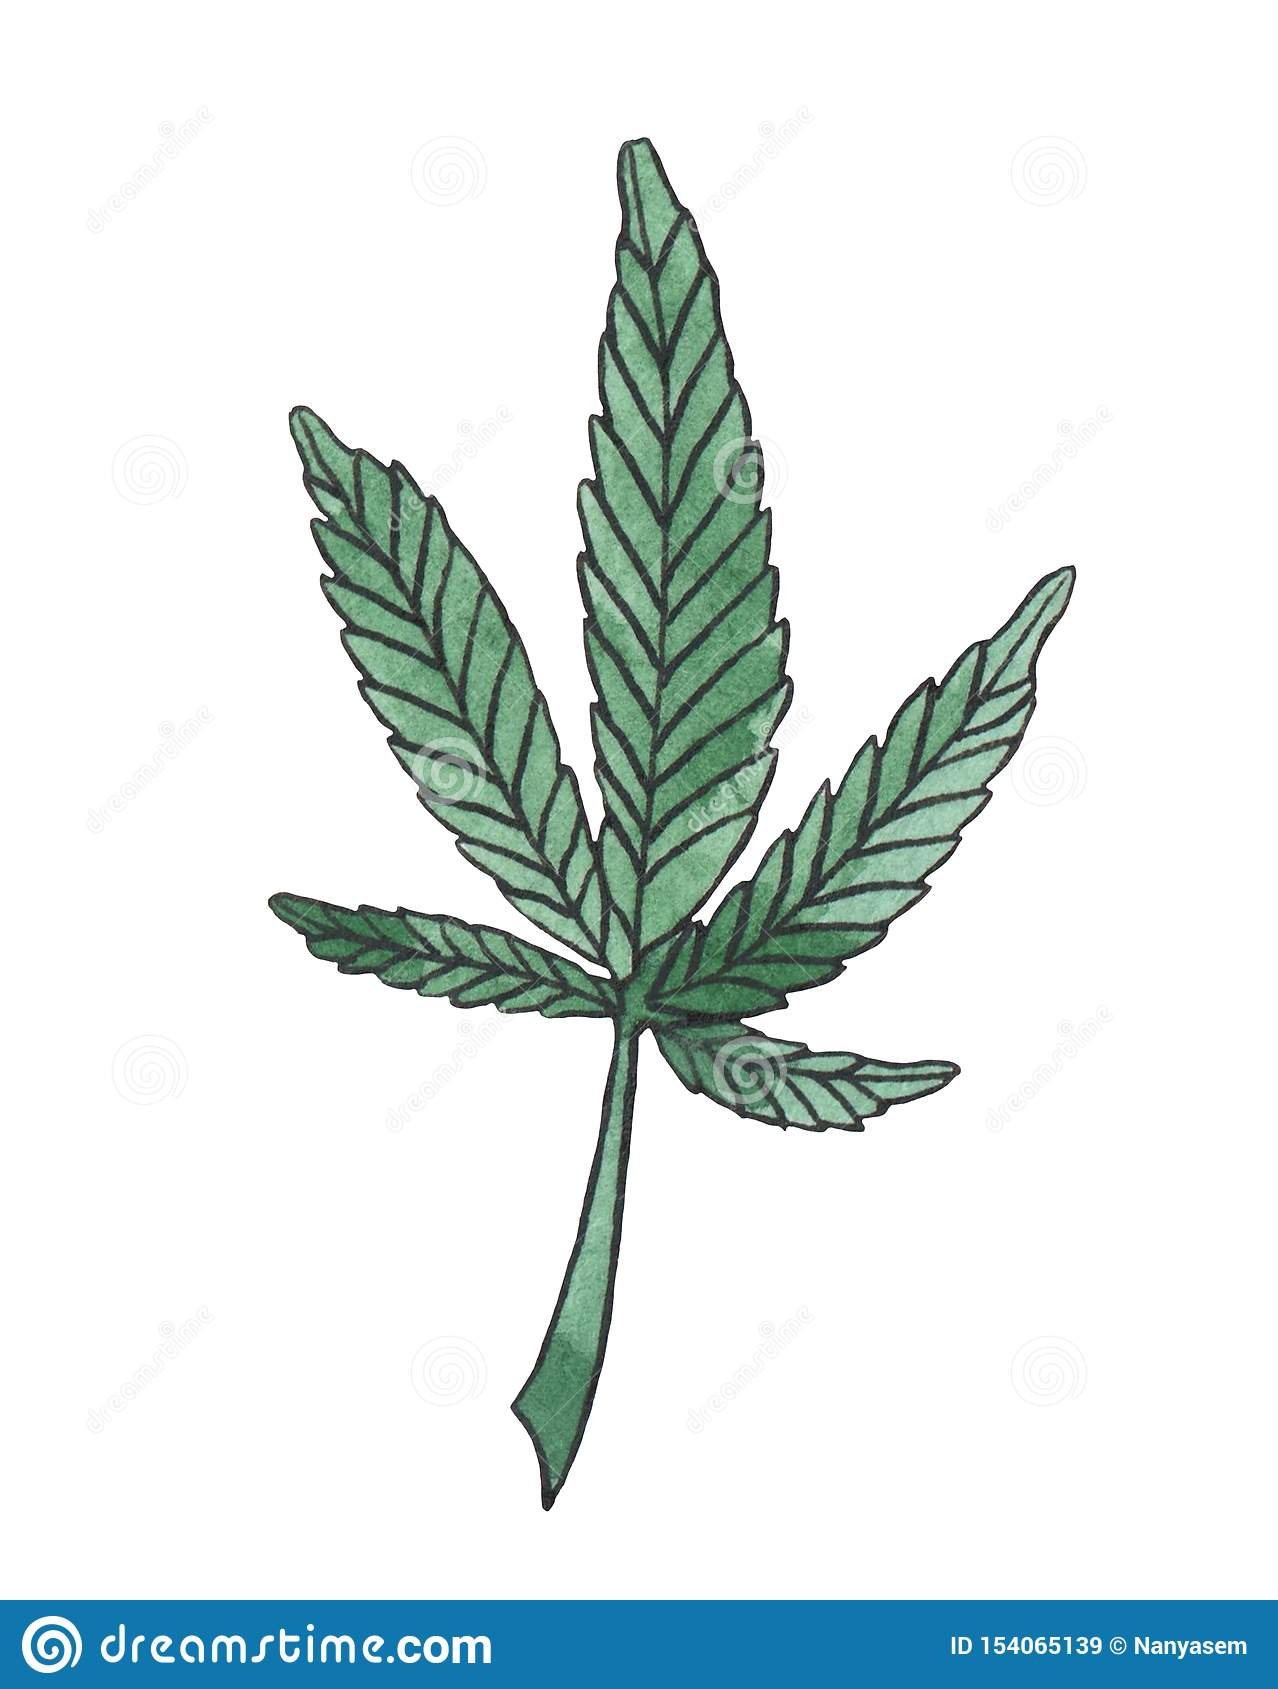 Watercolor illustration branch of Green Hemp leave